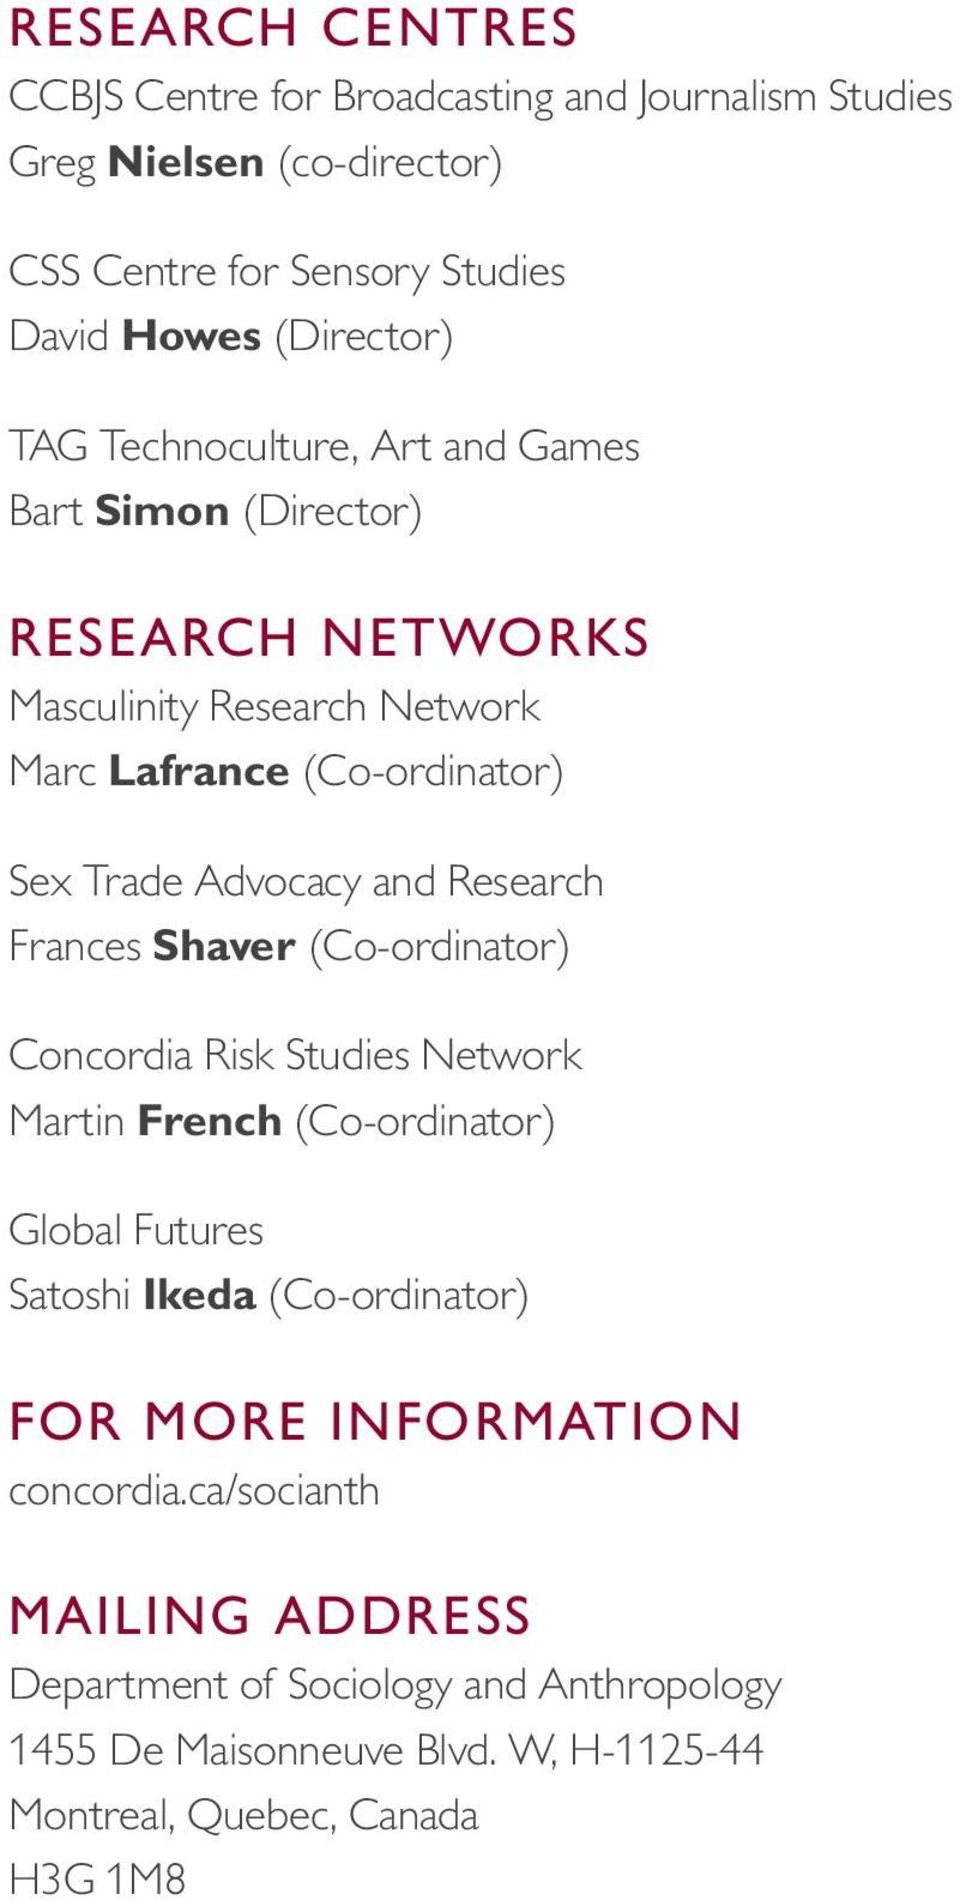 Research Frances Shaver (Co-ordinator) Concordia Risk Studies Network Martin French (Co-ordinator) Global Futures Satoshi Ikeda (Co-ordinator) FOR MORE